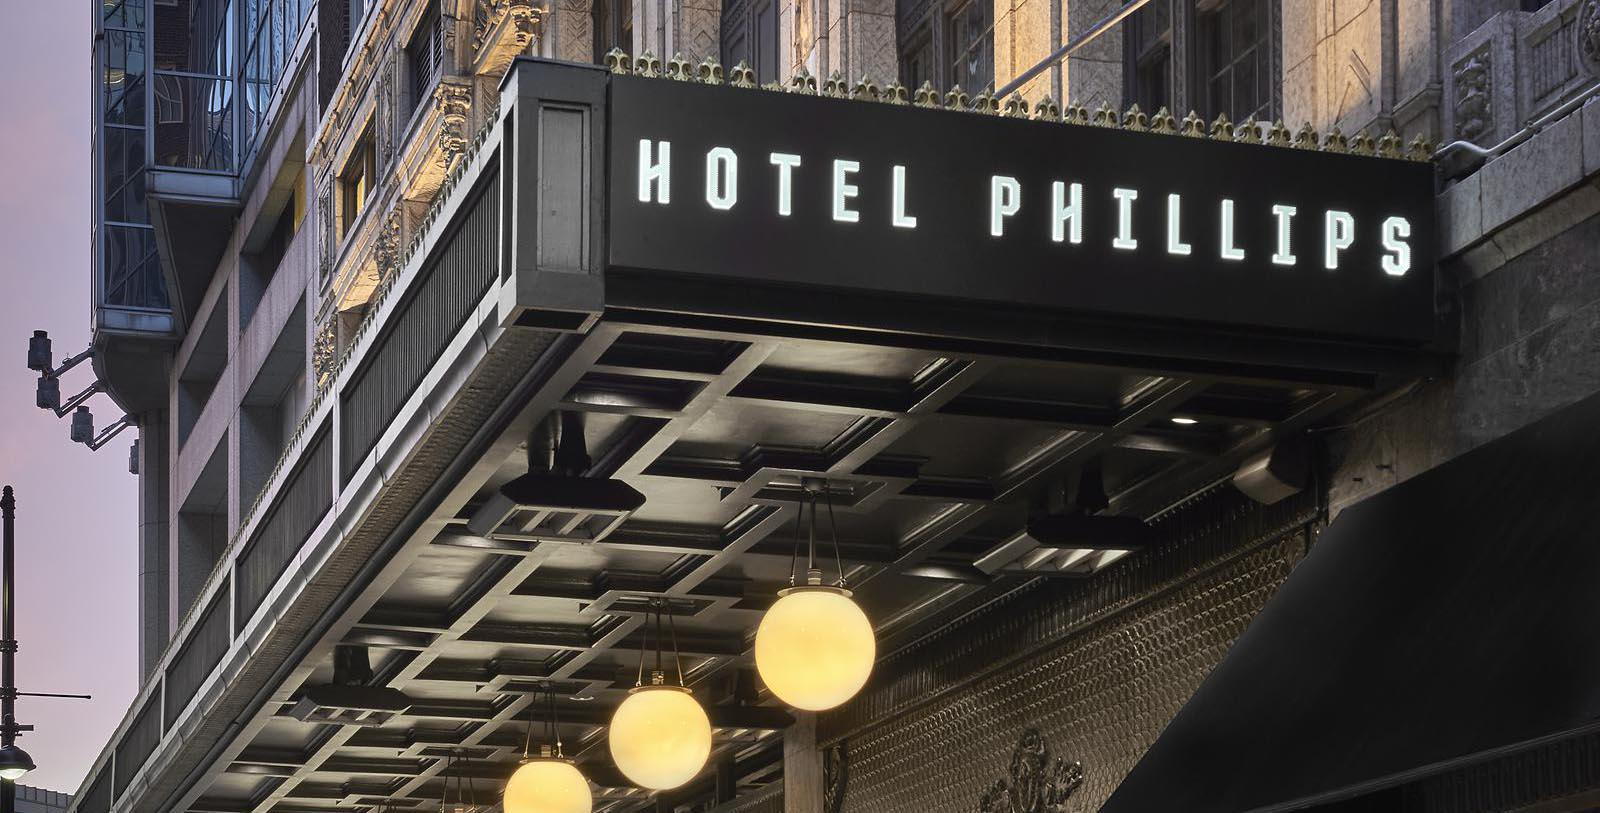 Image of Exterior Marquee, Hotel Phillips Kansas City, Missouri, 1931, Curio Collection by Hilton, Member of Historic Hotels of America, Special Offers, Discounted Rates, Families, Romantic Escape, Honeymoons, Anniversaries, Reunions